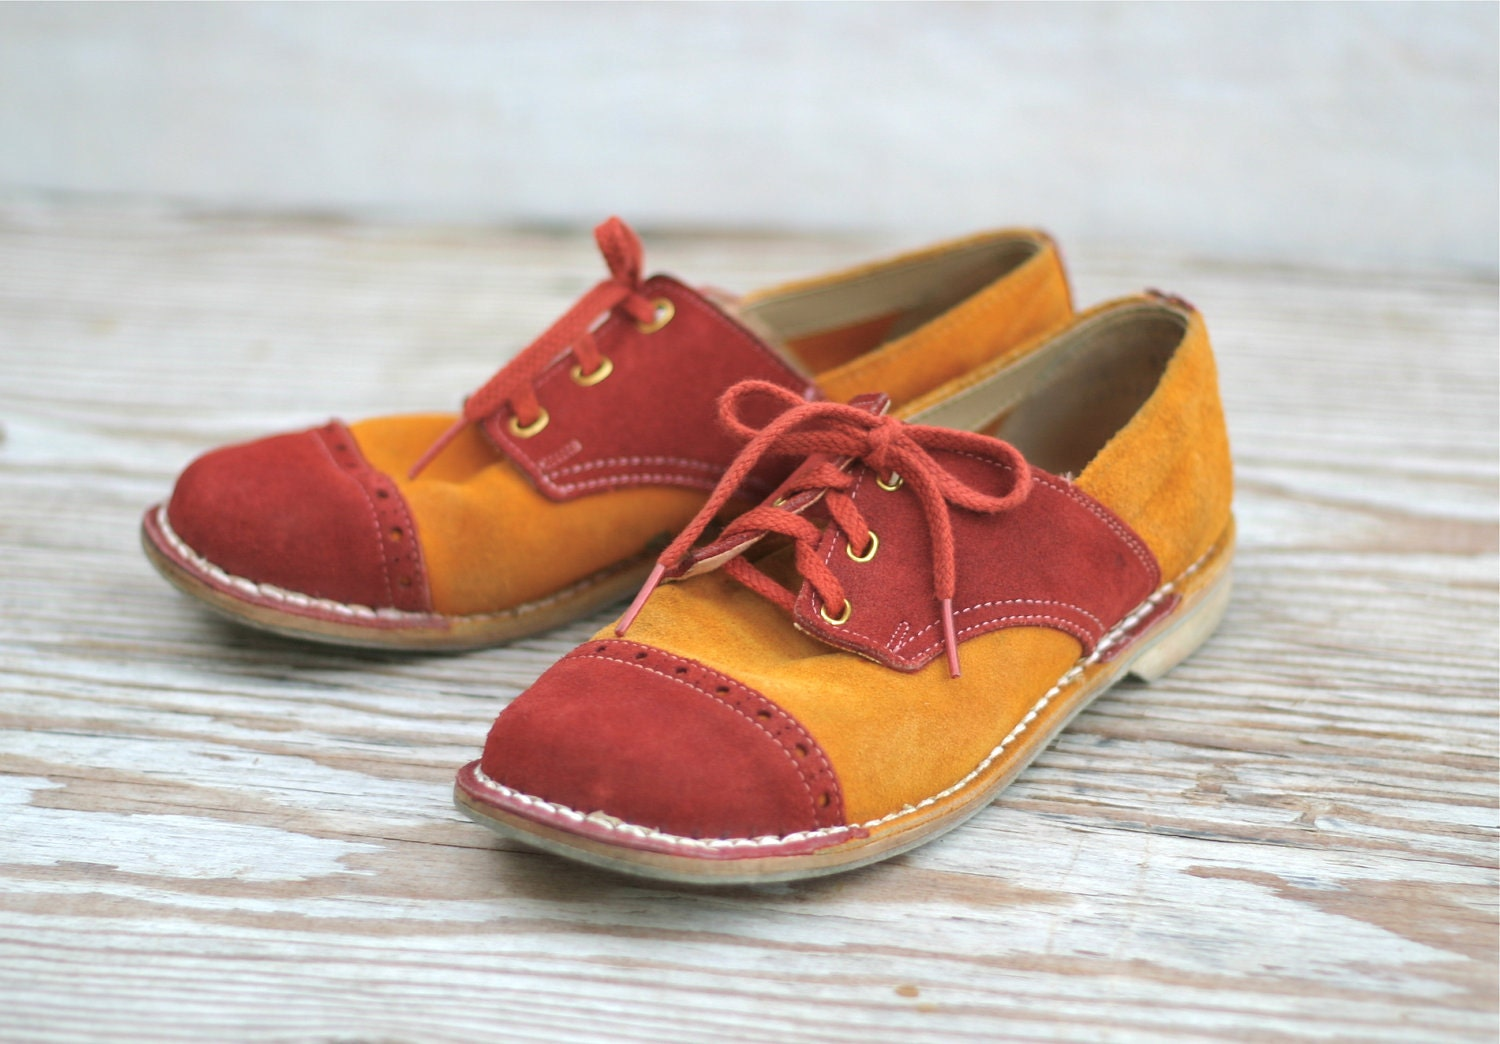 Vintage Suede Saddle Shoes Bowling Tangerine And Brick Red